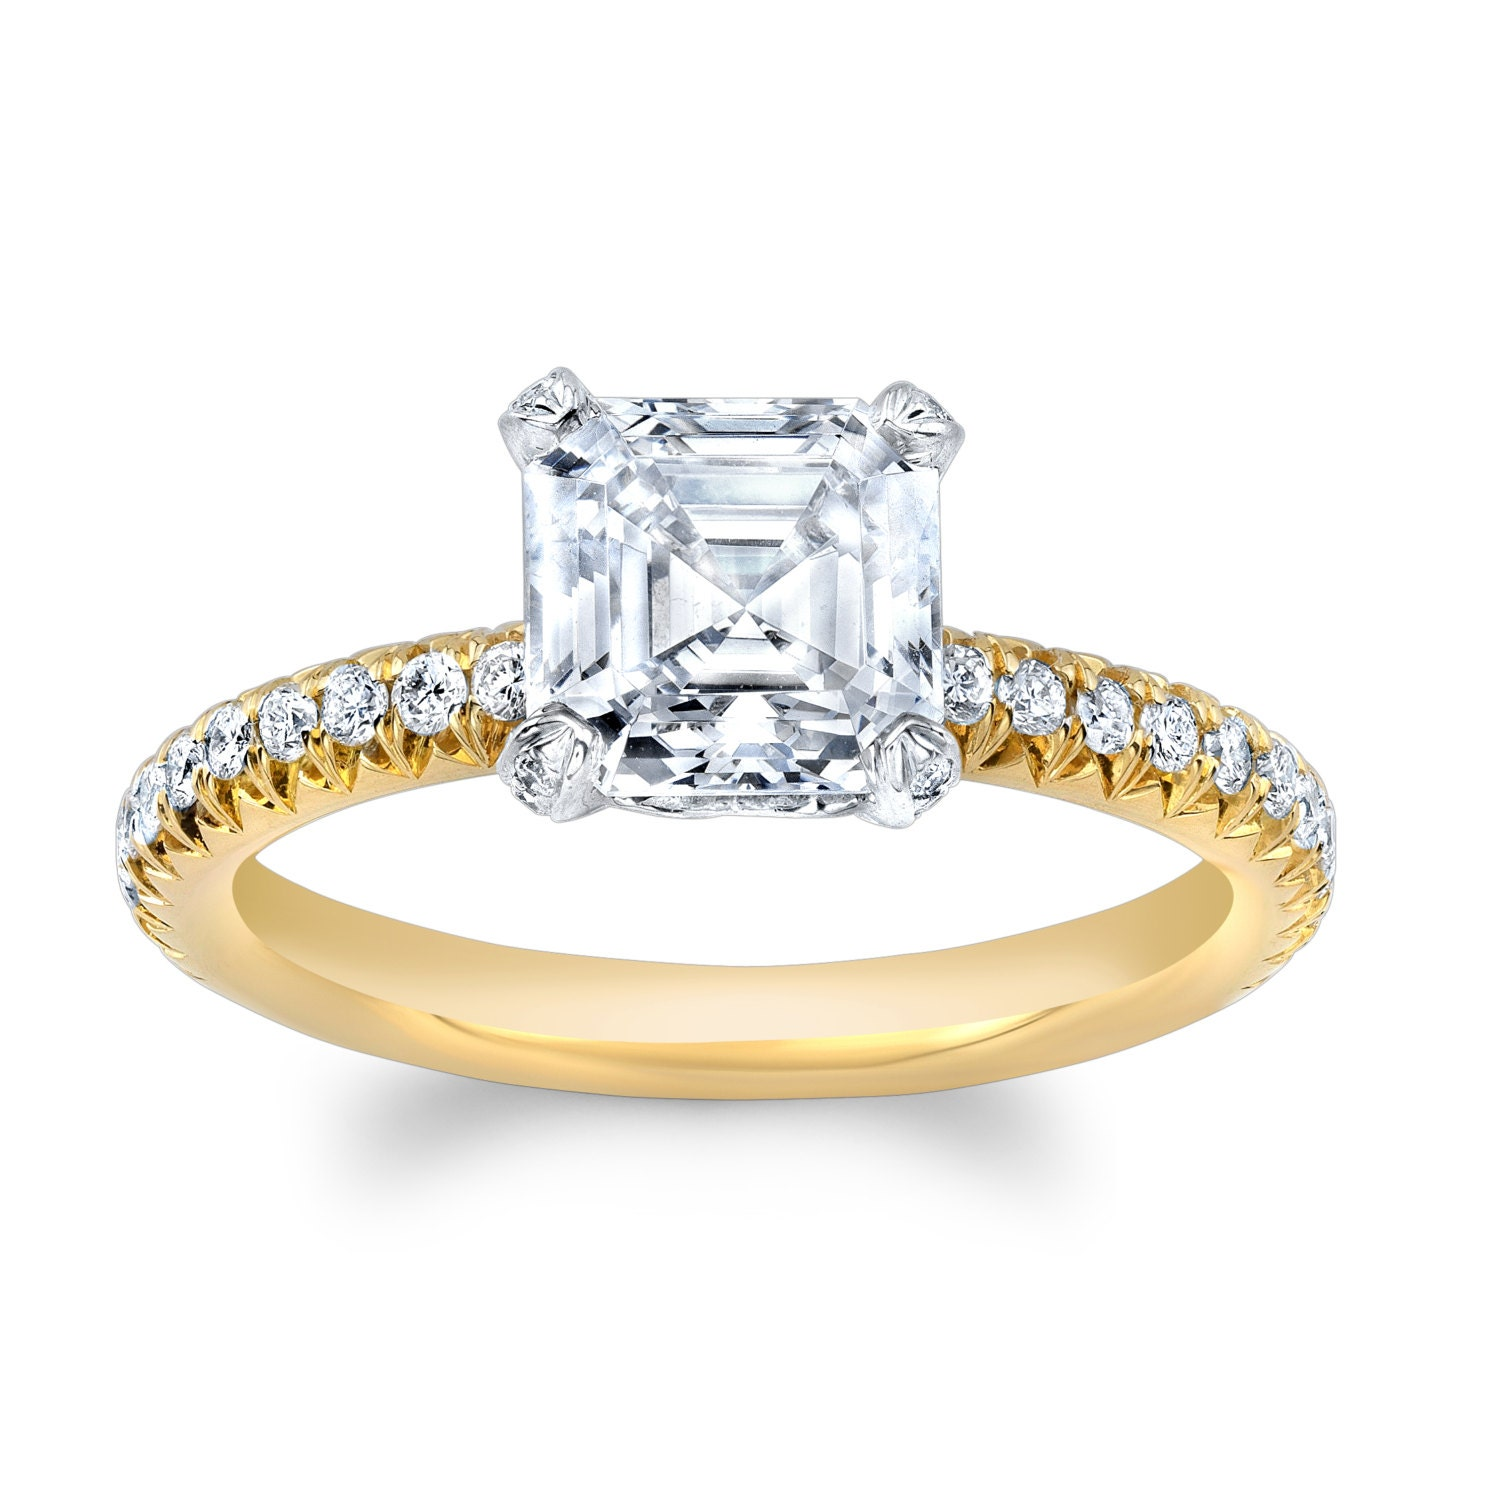 ring cut create to french quarter asscher account earn points vintage rings engagement login an or